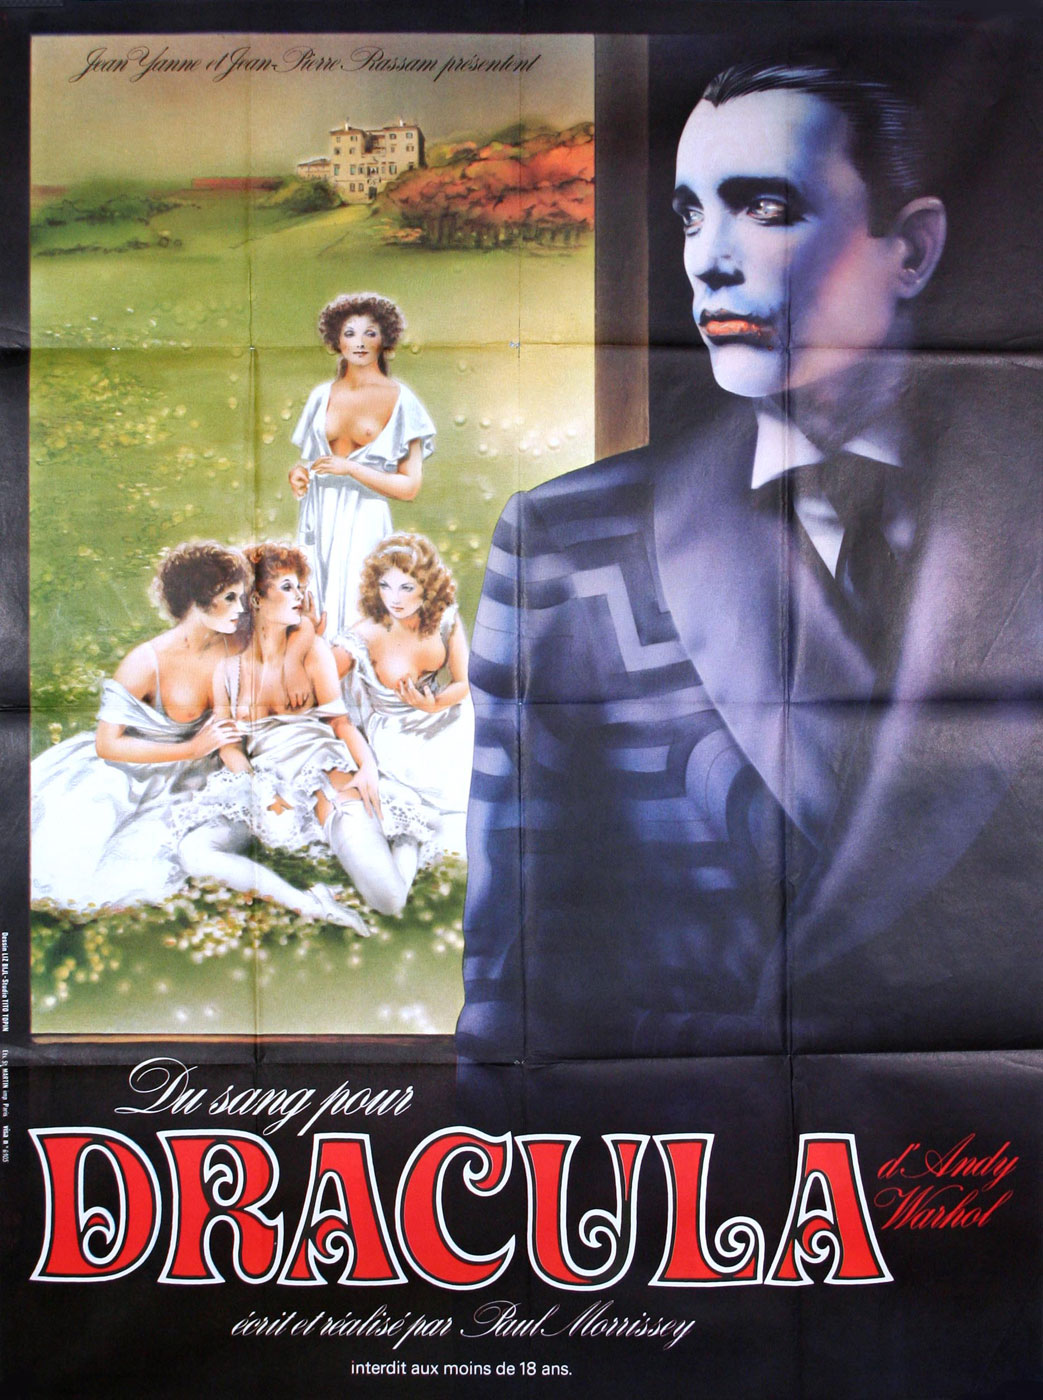 Blood For Dracula by Paul Morrissey